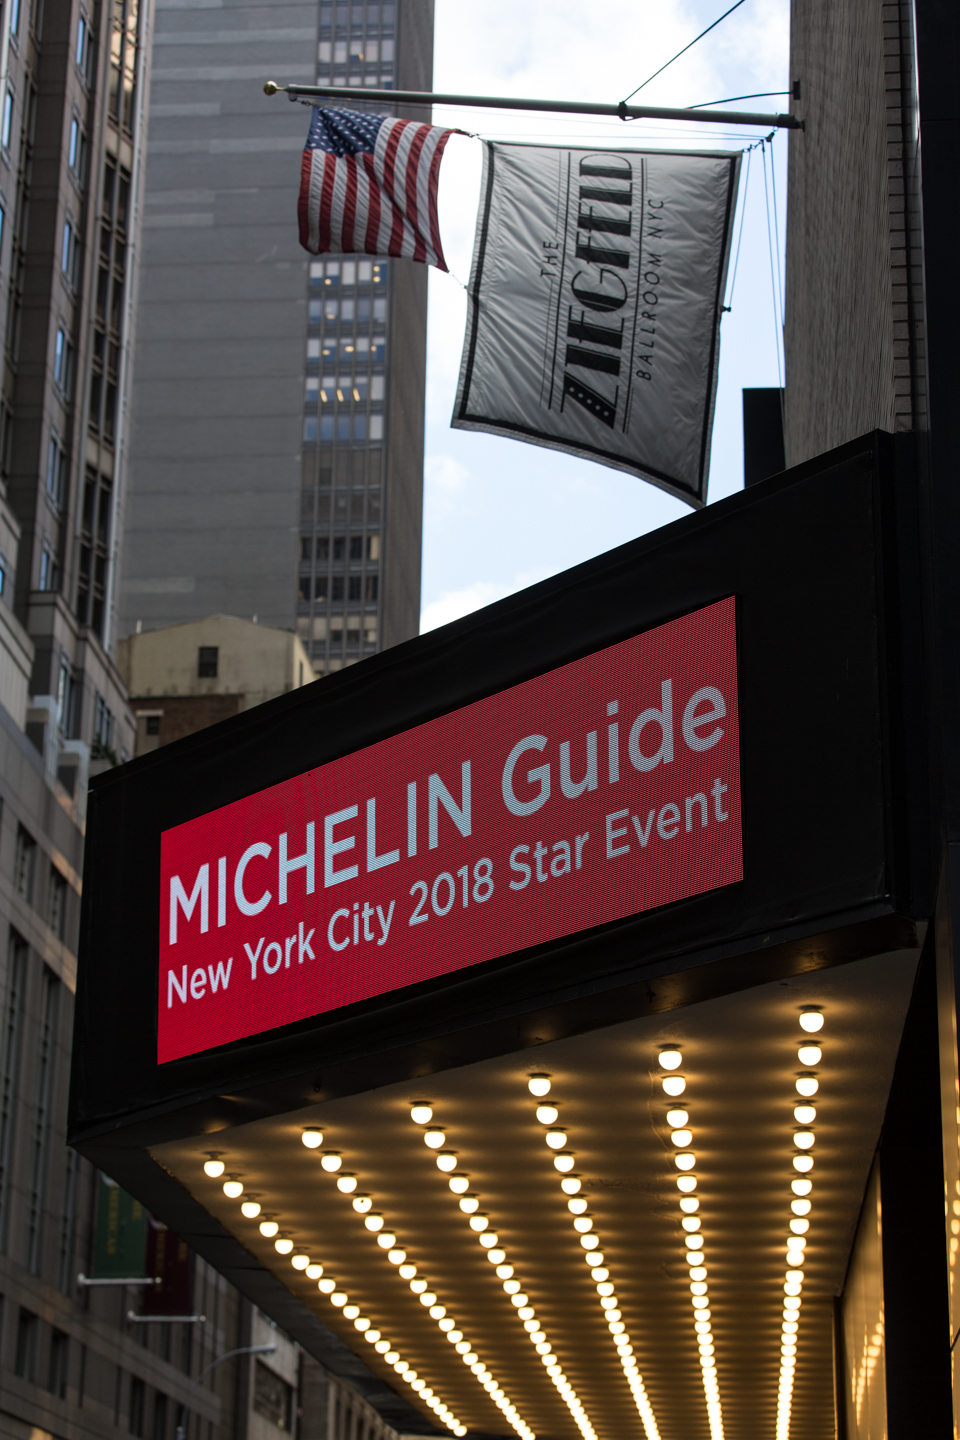 Michelin Award Gala in New York City